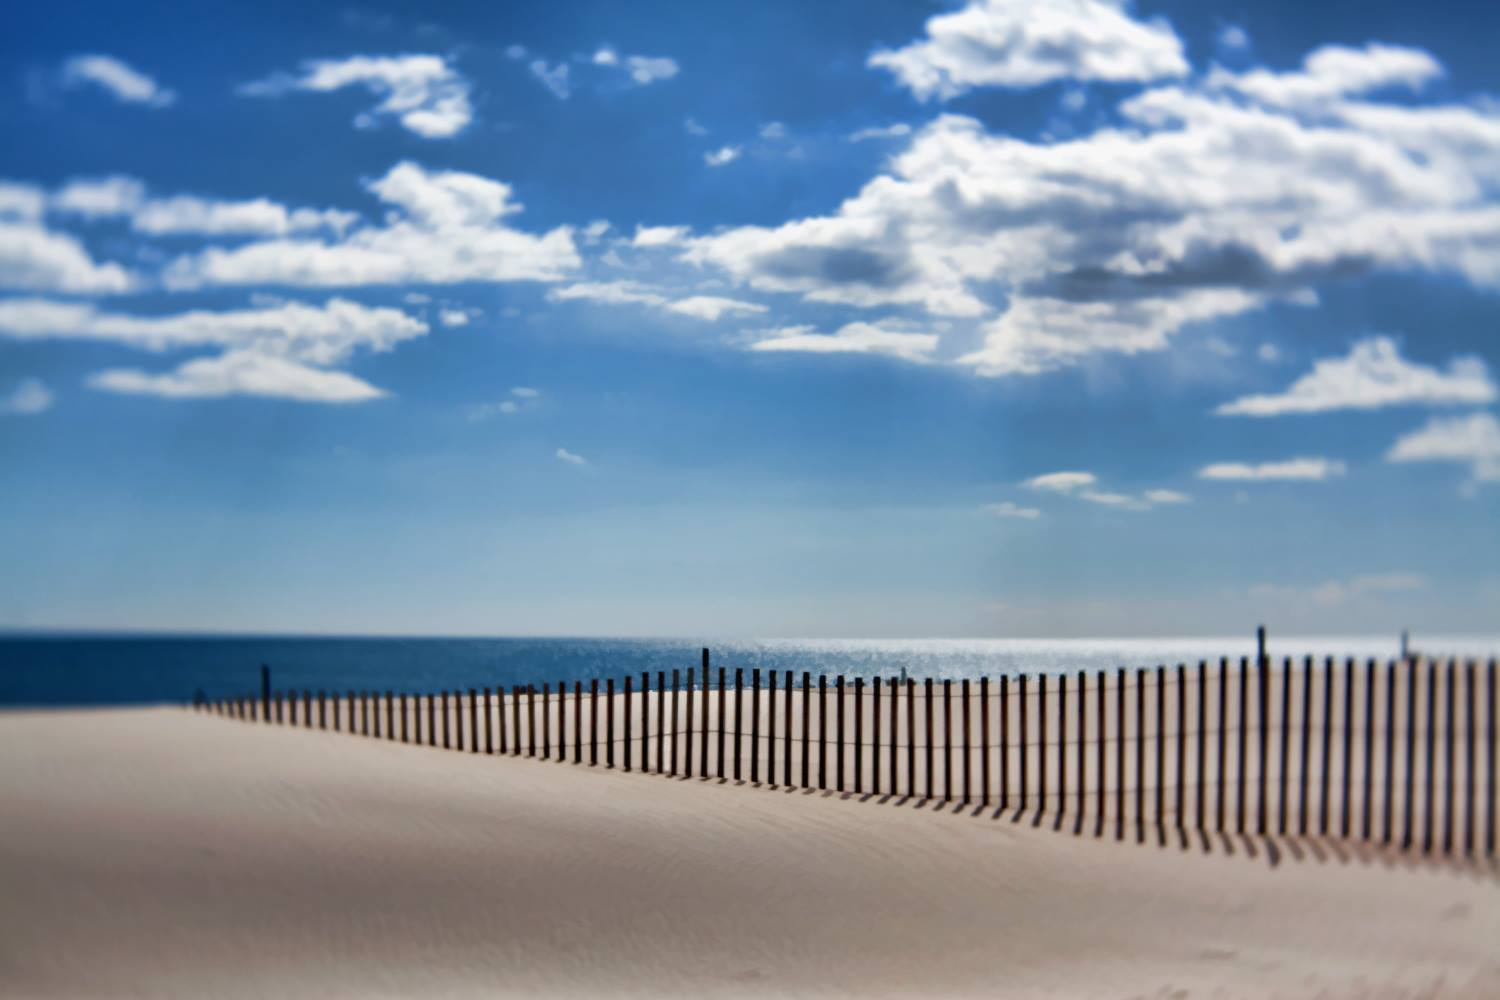 beach fence sand ocean blue sky white clouds selective focus Lensbaby featured photos of the week